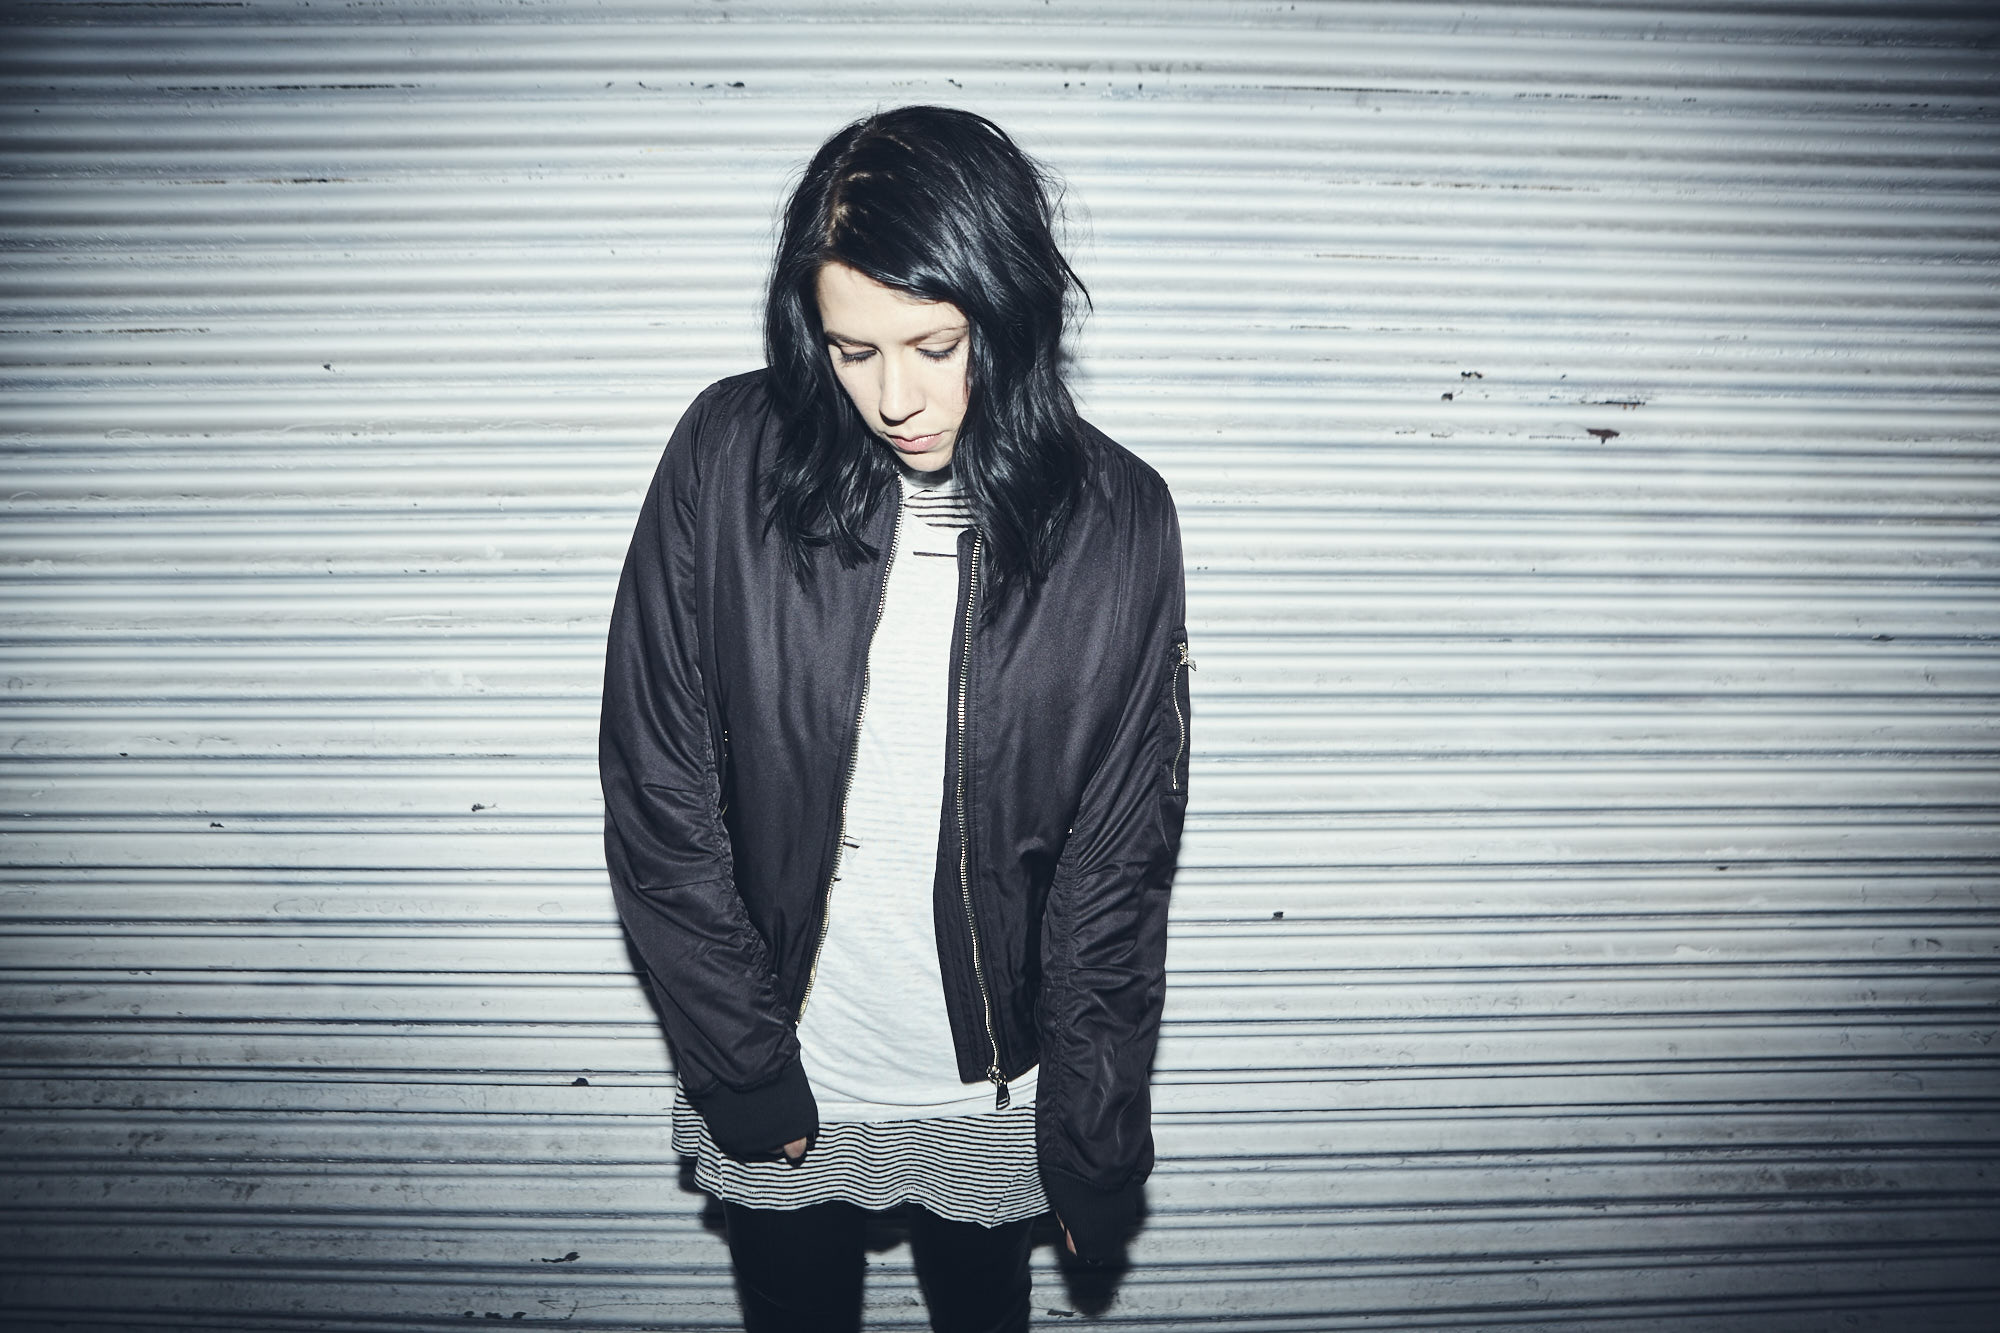 K. Flay. Photographed by Koury Angelo